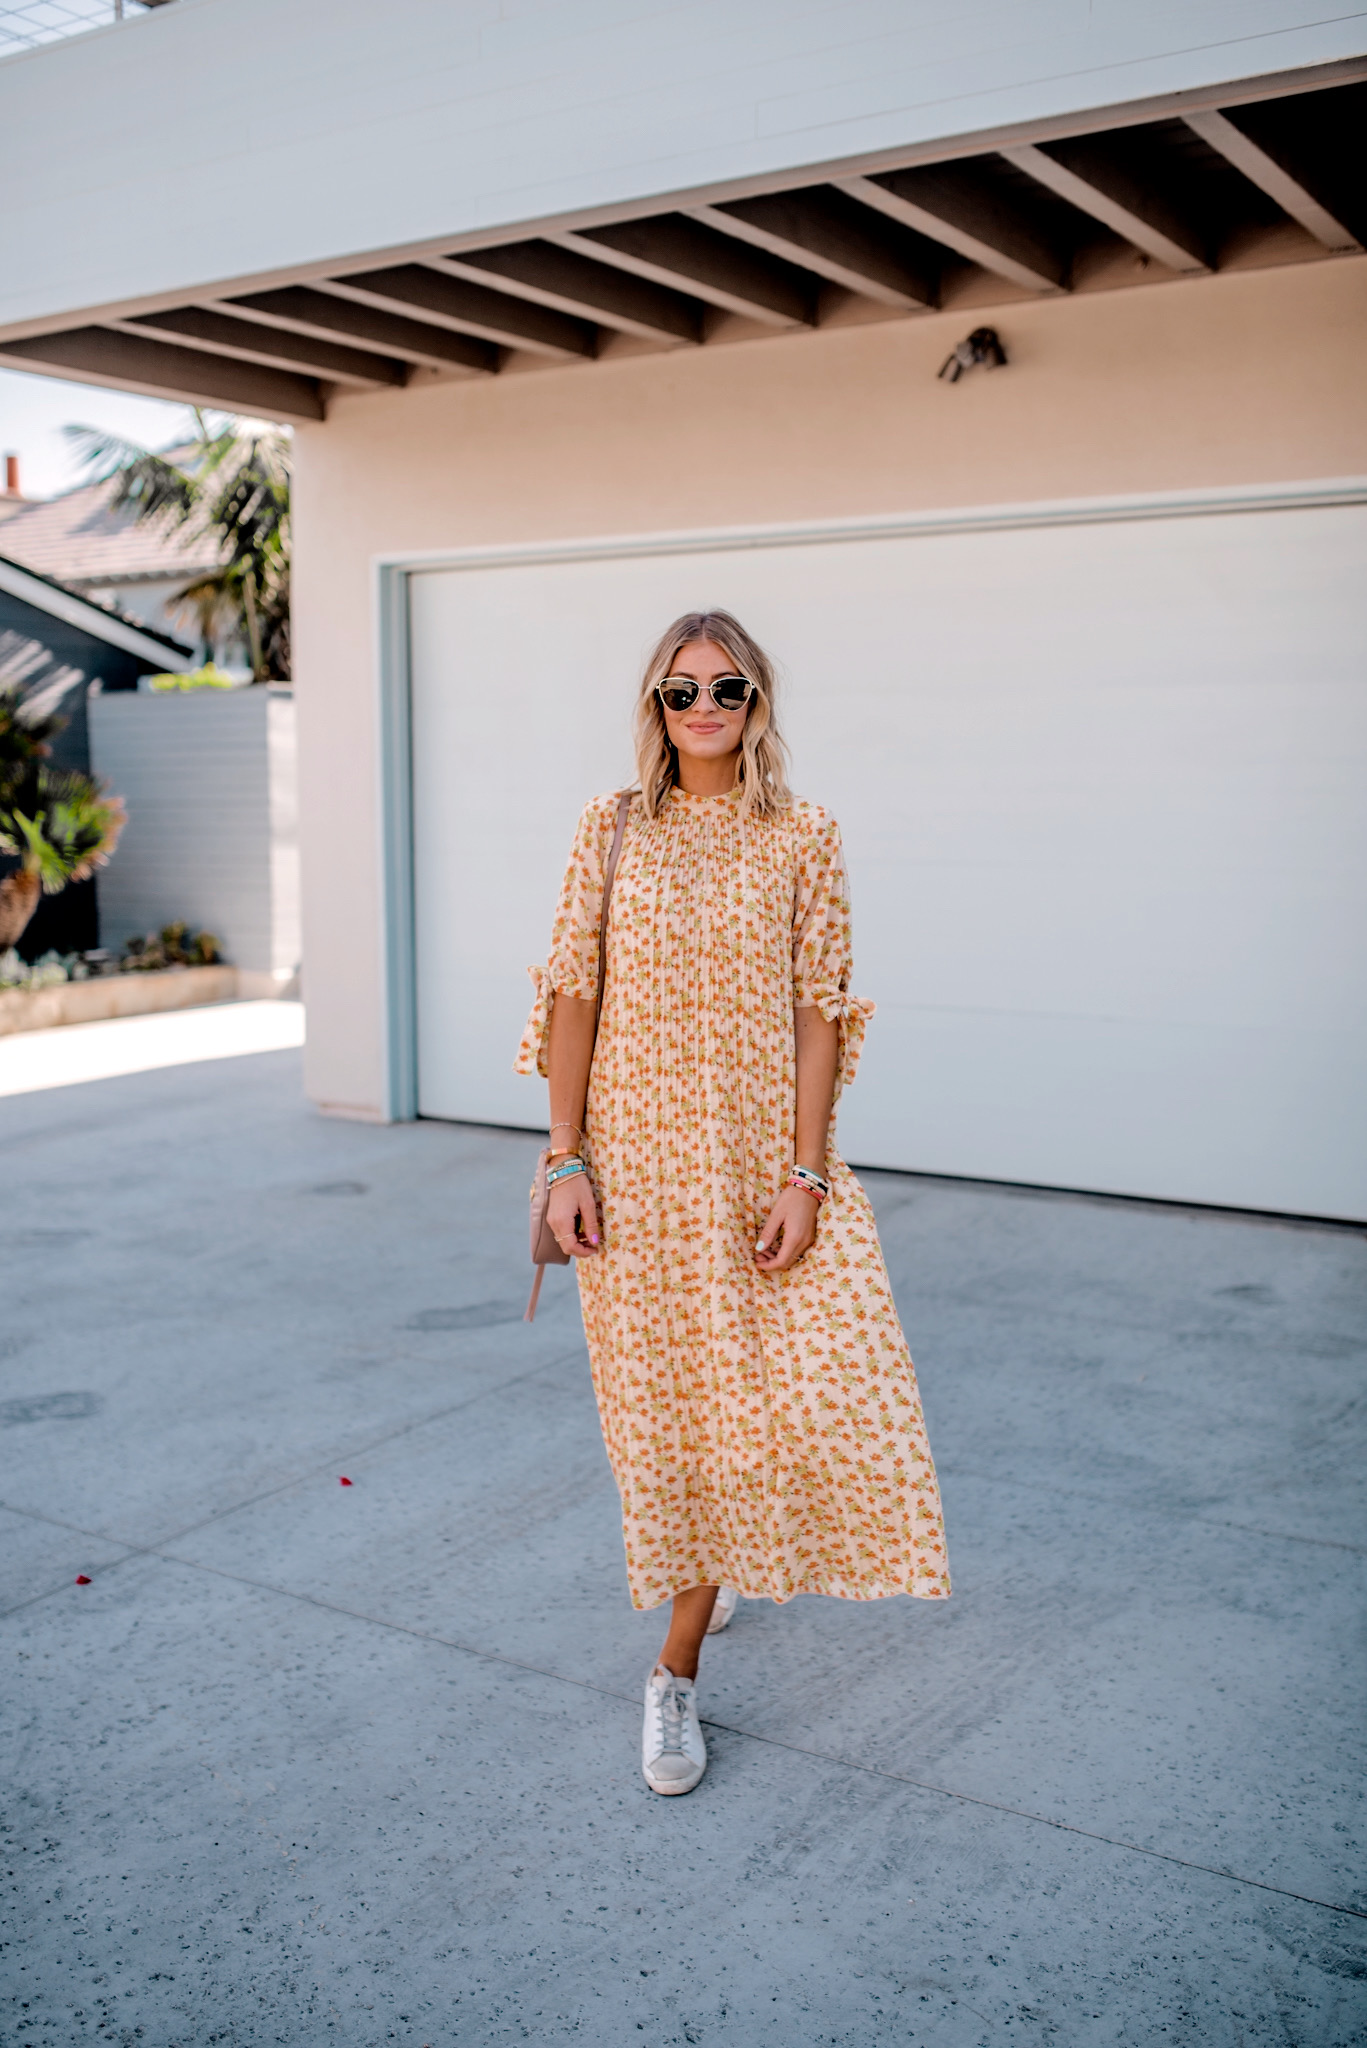 Fall Sneakers for Women by popular San Diego fashion blog, Navy Grace: image of a woman standing in front of a garage door and wearing a ASOS pleated trapeze midi dress with tie sleeves in ditsy floral print, Golden Goose sneakers, Le Specs Echo Sunglasses, and holding a Gucci purse.